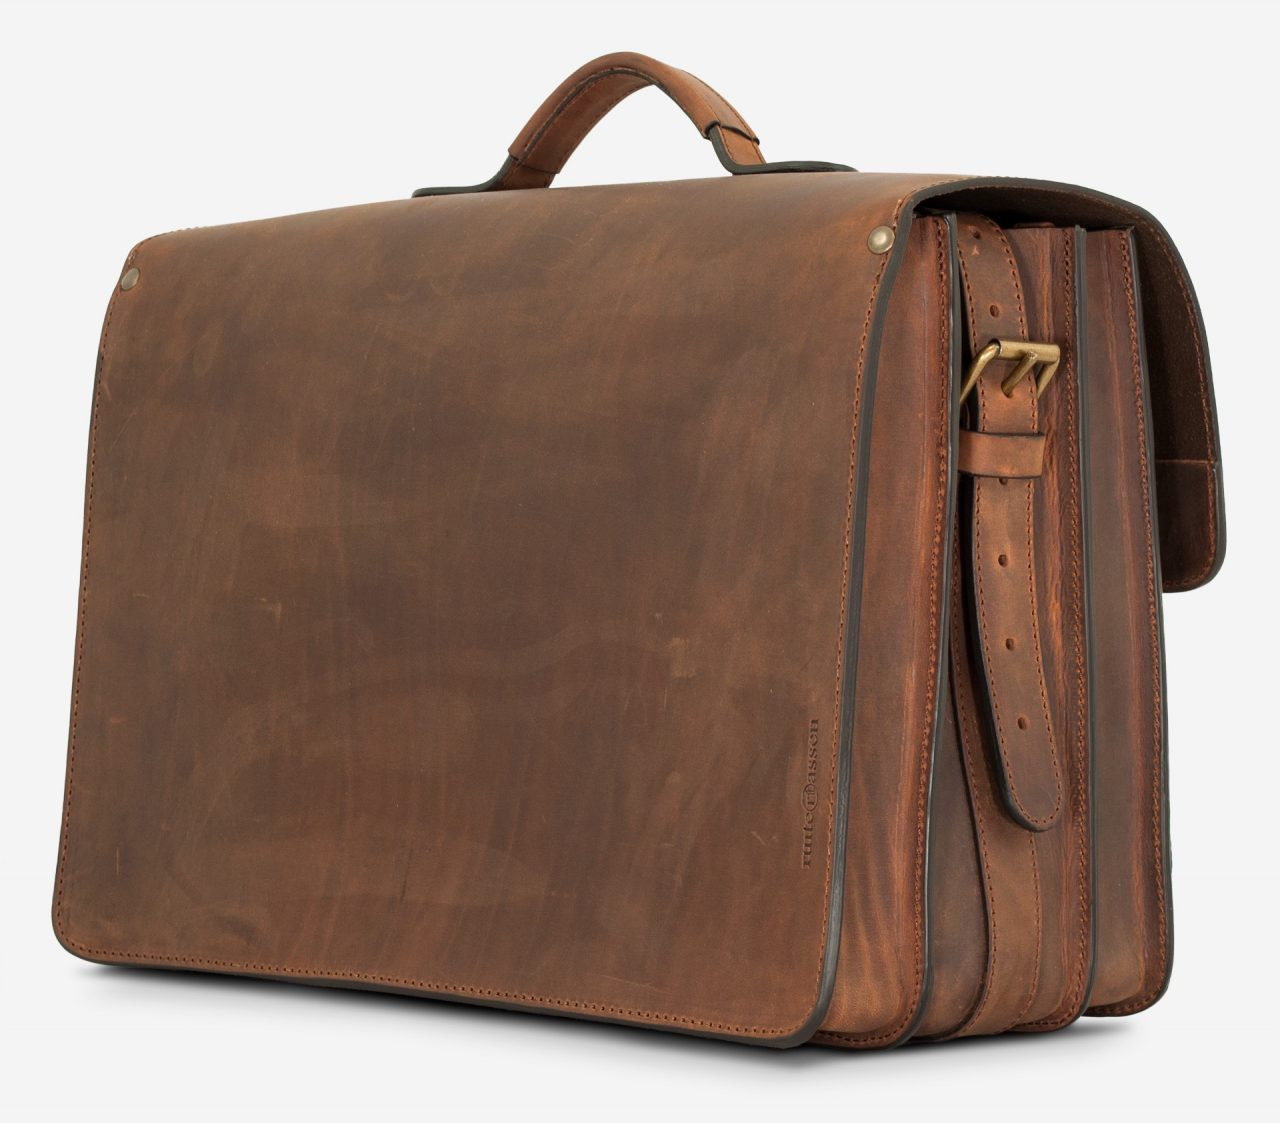 Back view of the Ruitertassen brown leather satchel briefcase.